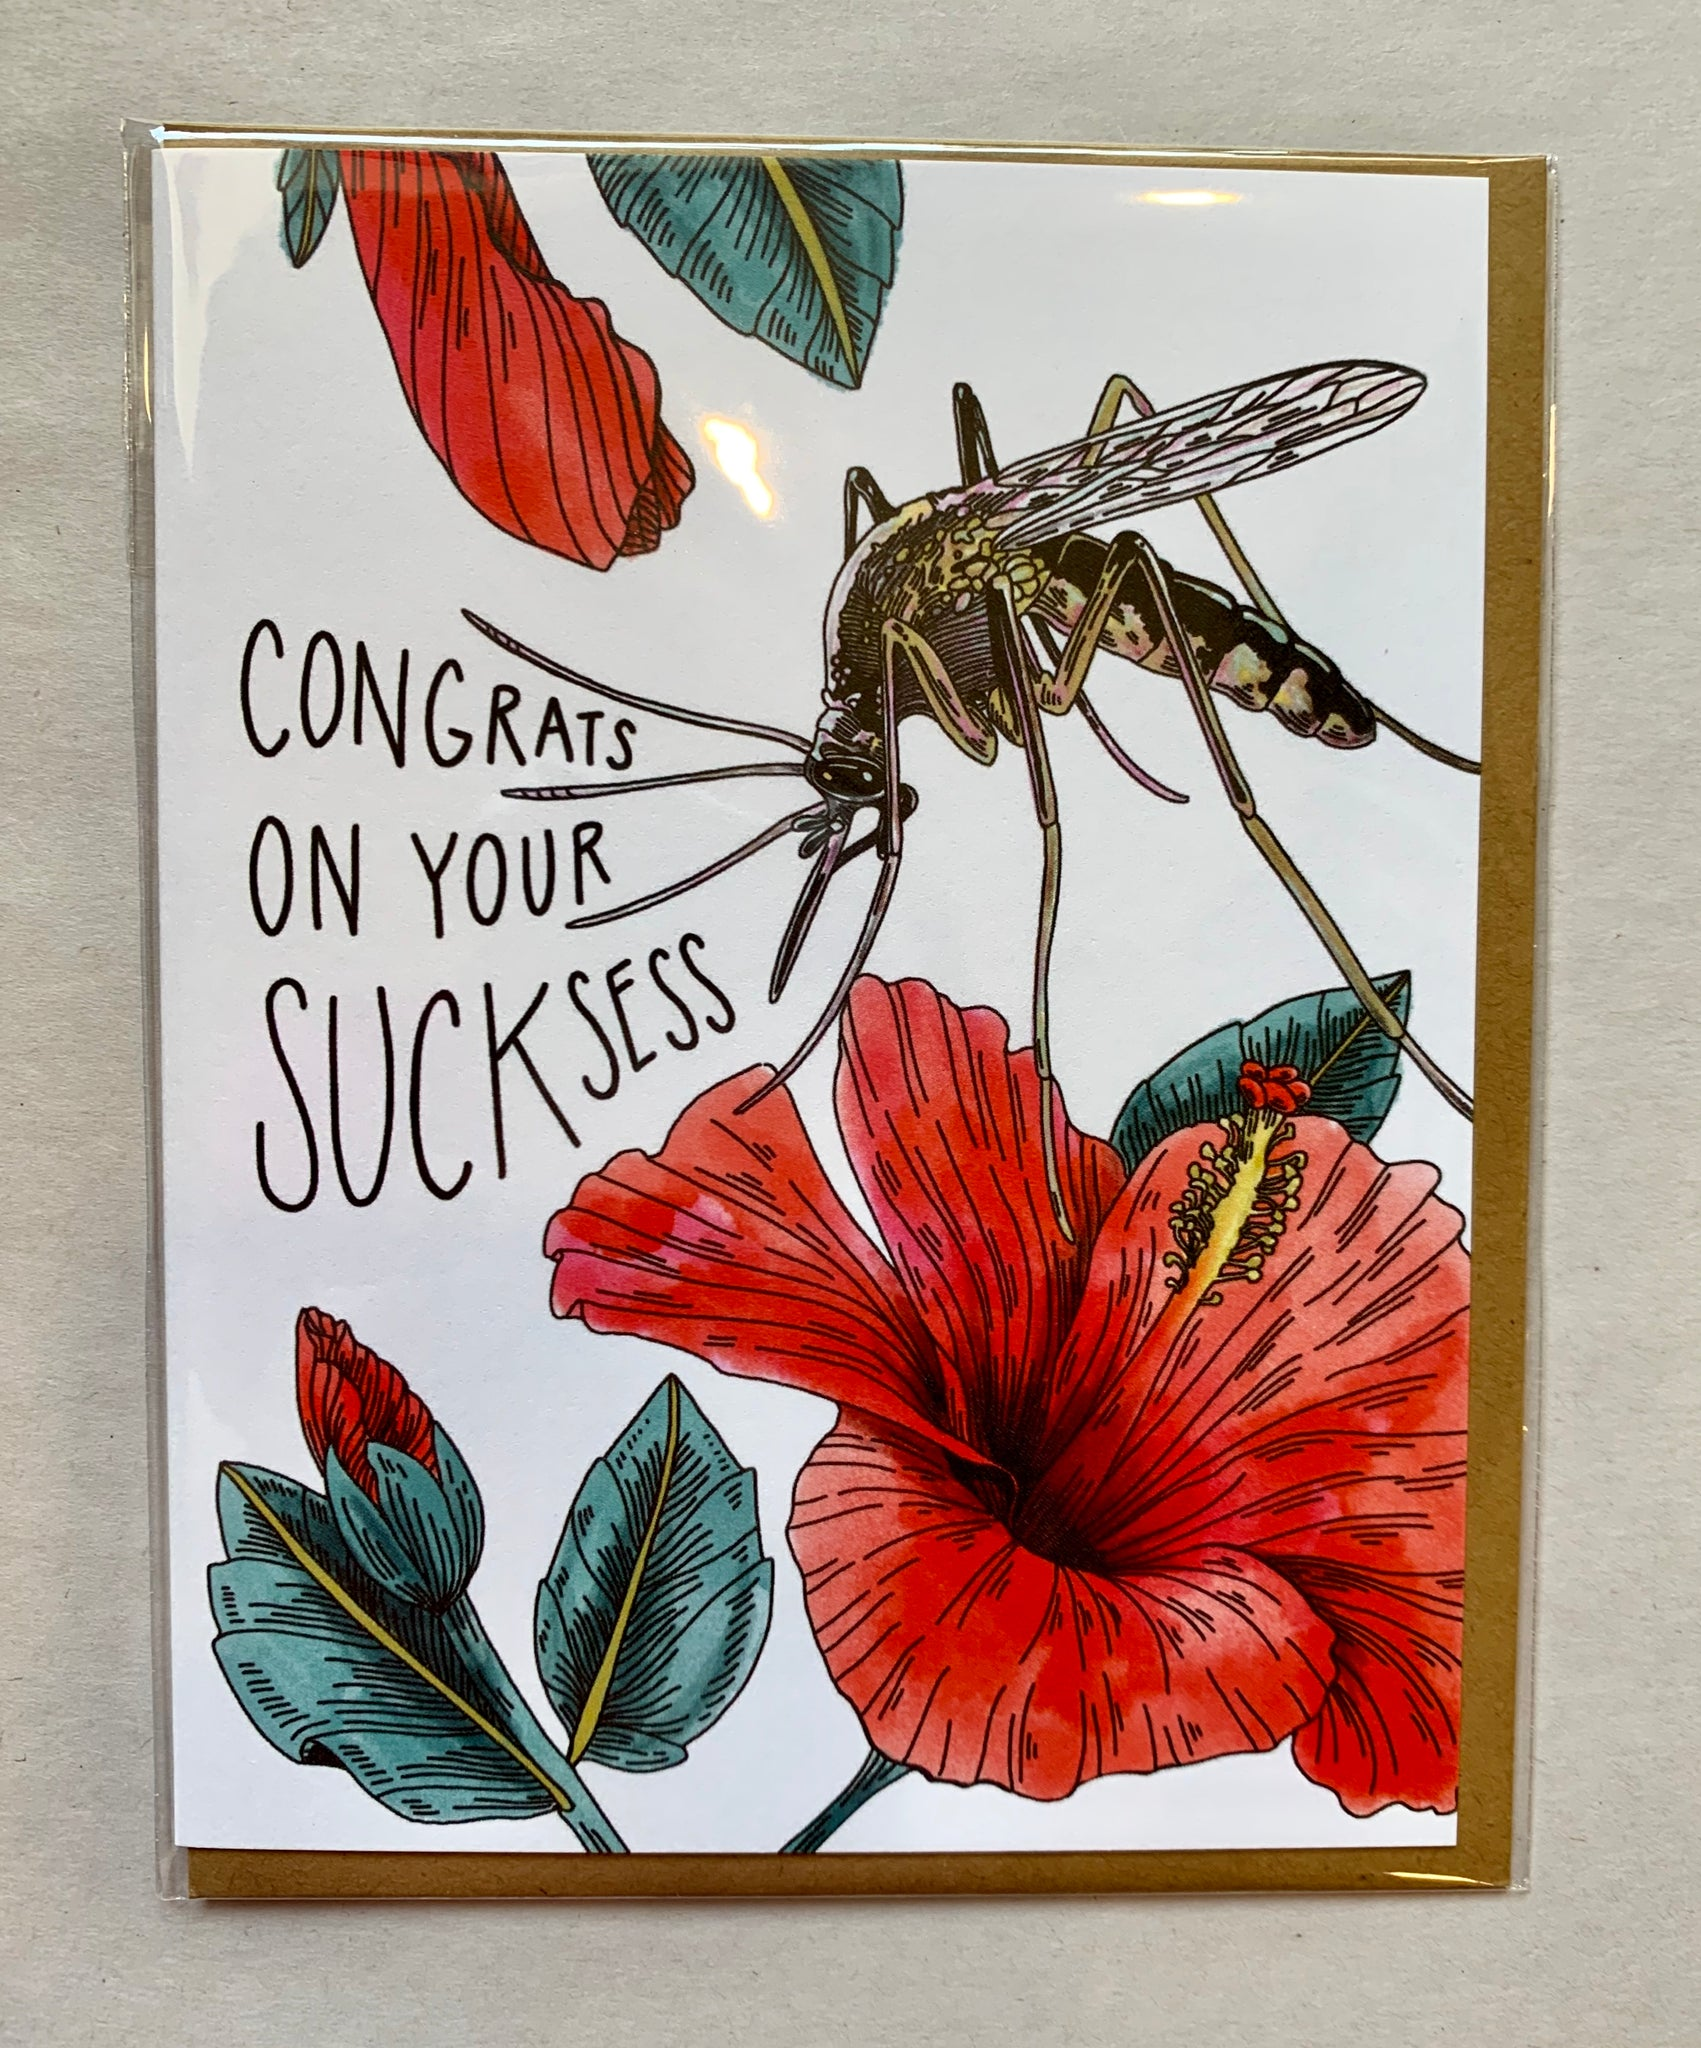 Congrats on Your Sucksess Card - 318 Art and Garden